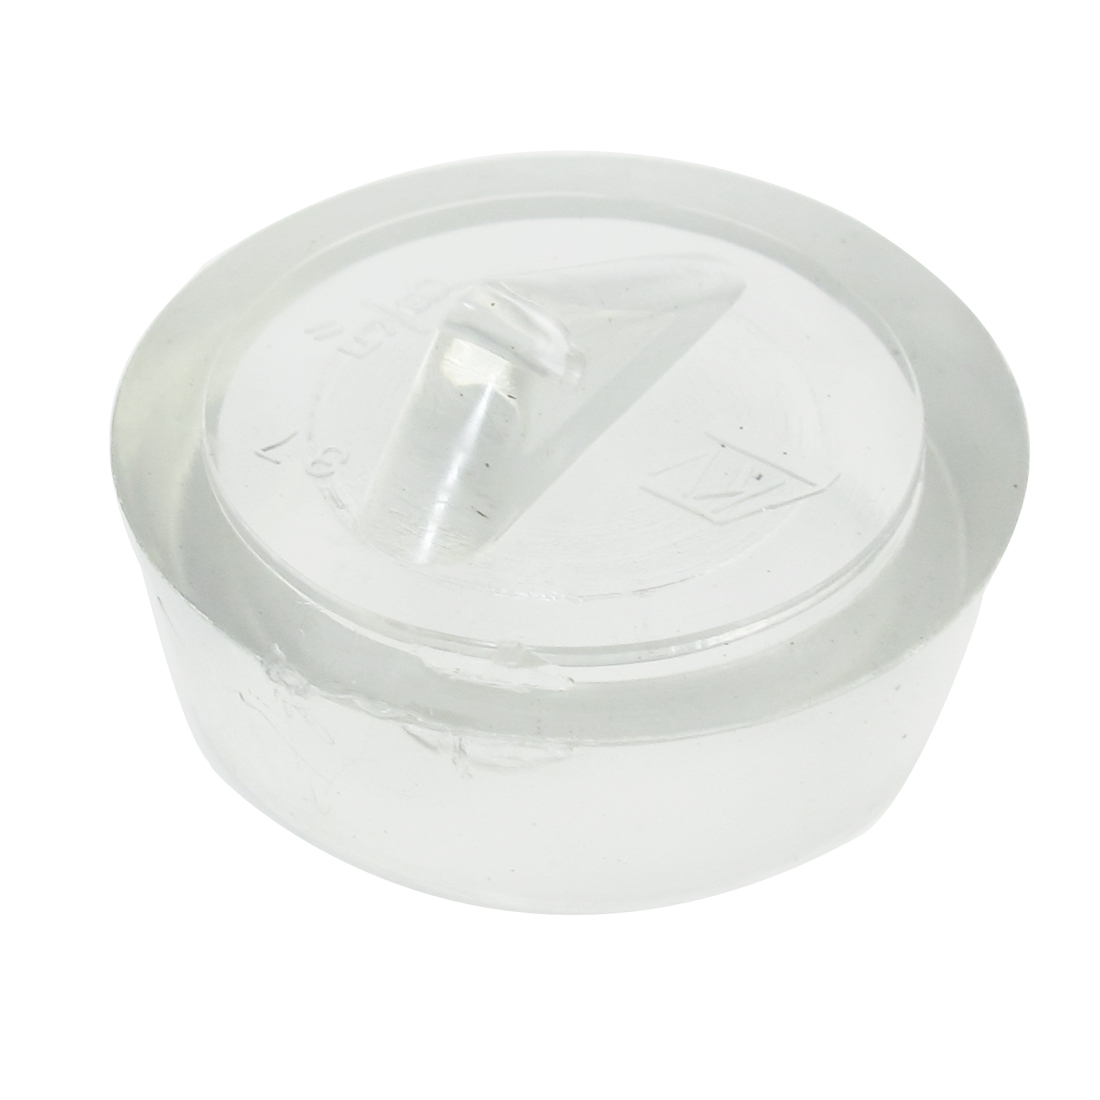 41mm Diameter Water Sink Drainer Mounted Clear Rubber Disposal Stopper